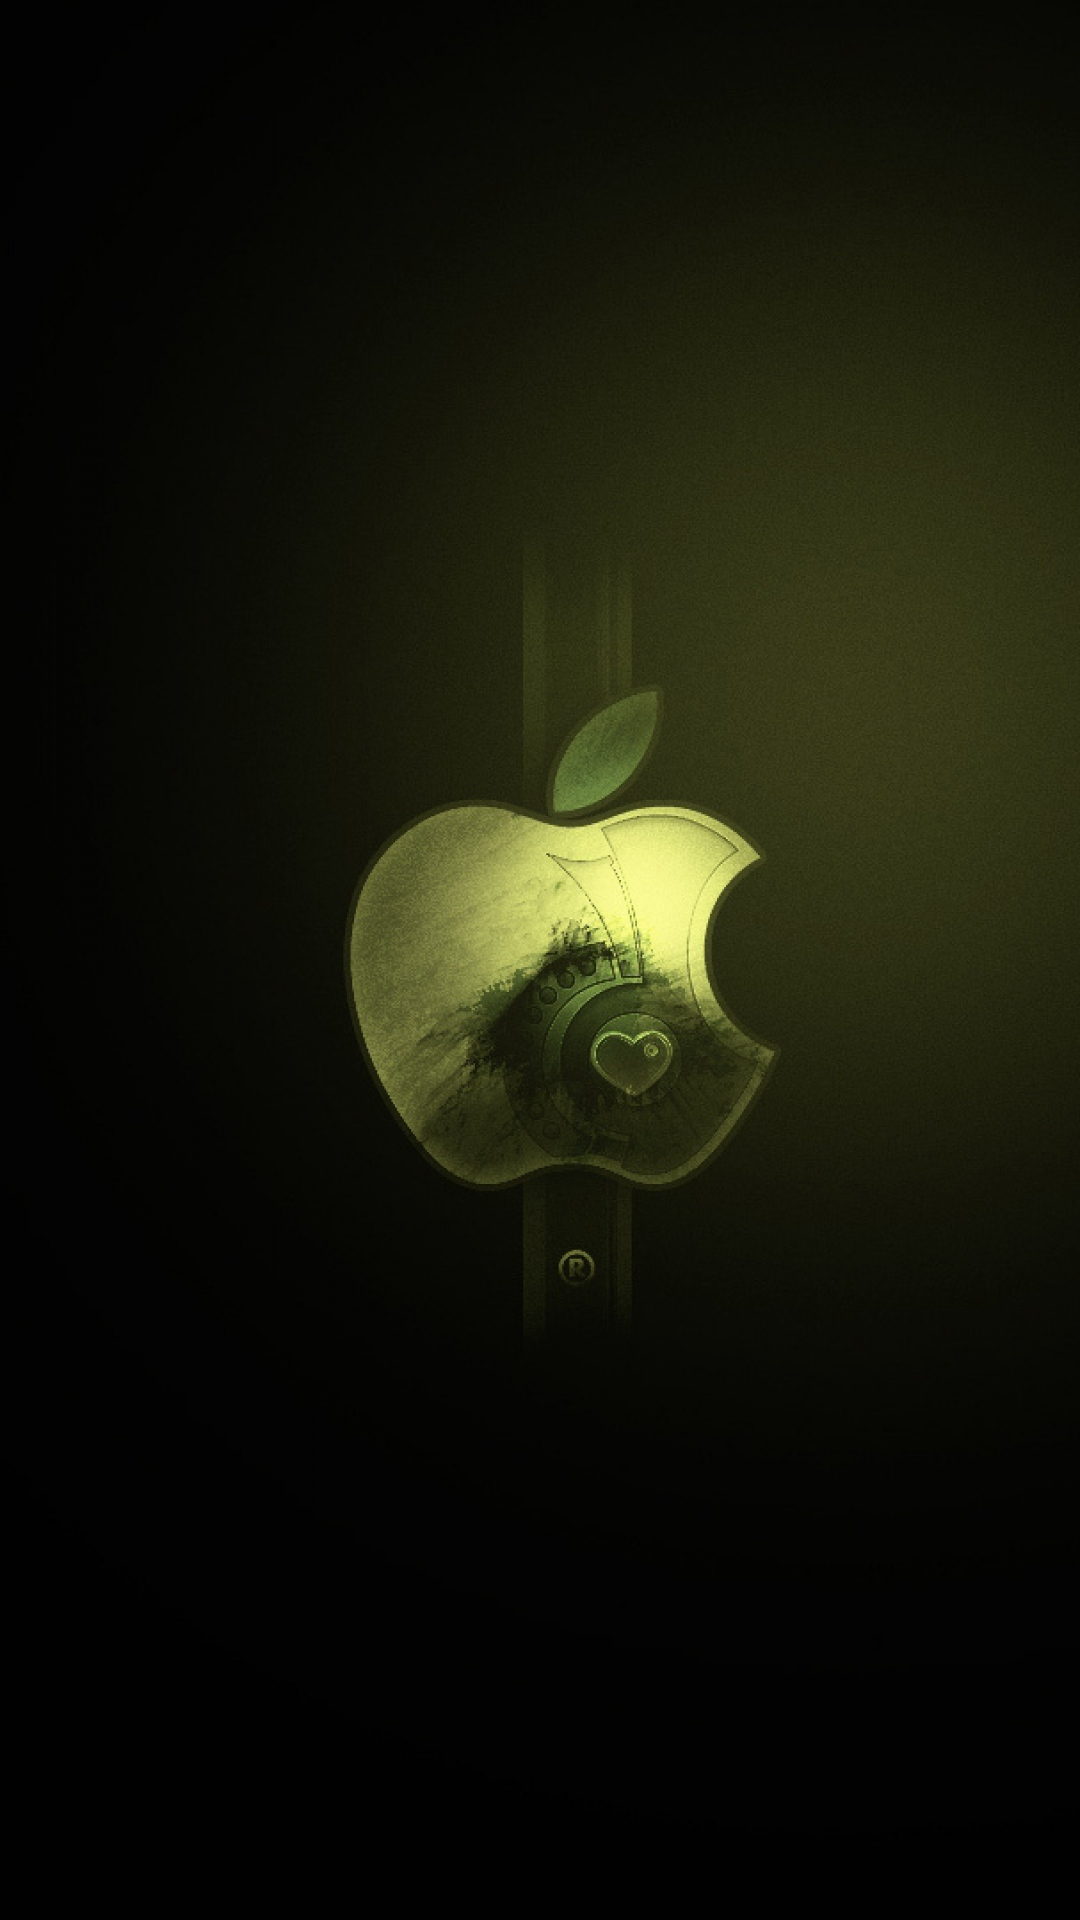 Cool Graffiti Wallpapers Hd Apple Logo Hd Wallpaper For Iphone Pixelstalk Net